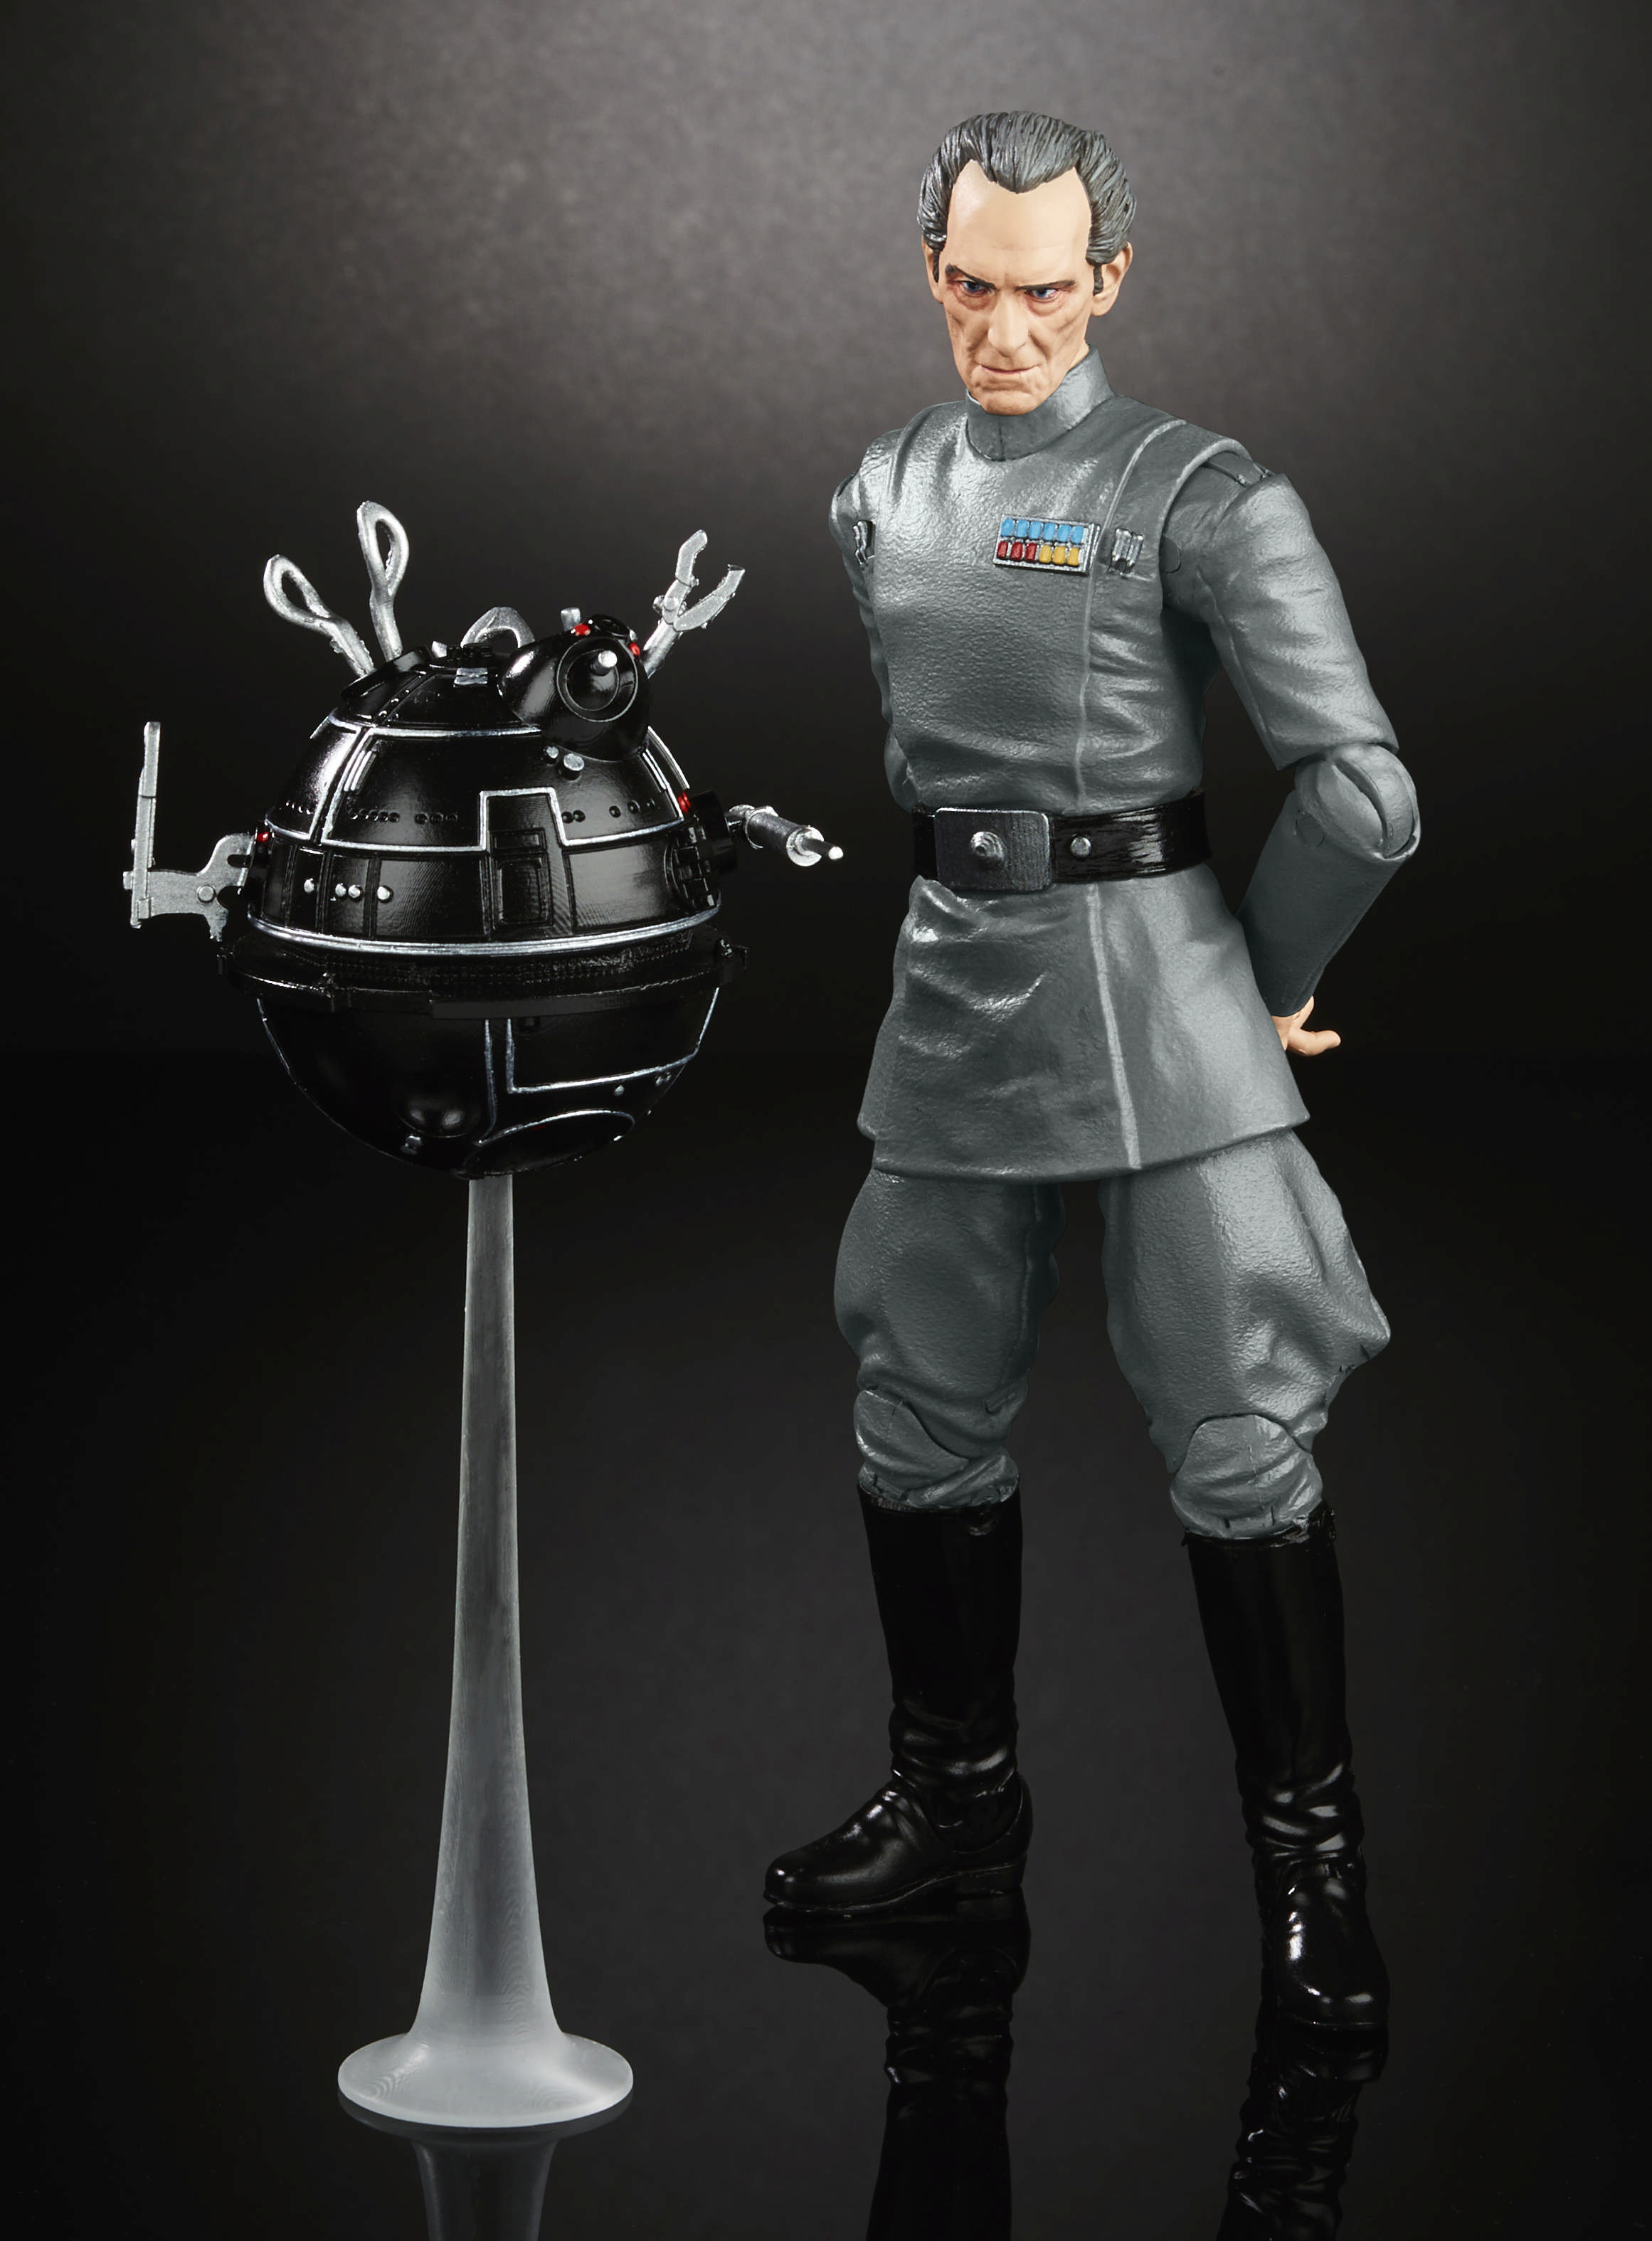 Star Wars Toys : Star wars celebration black series figures preview